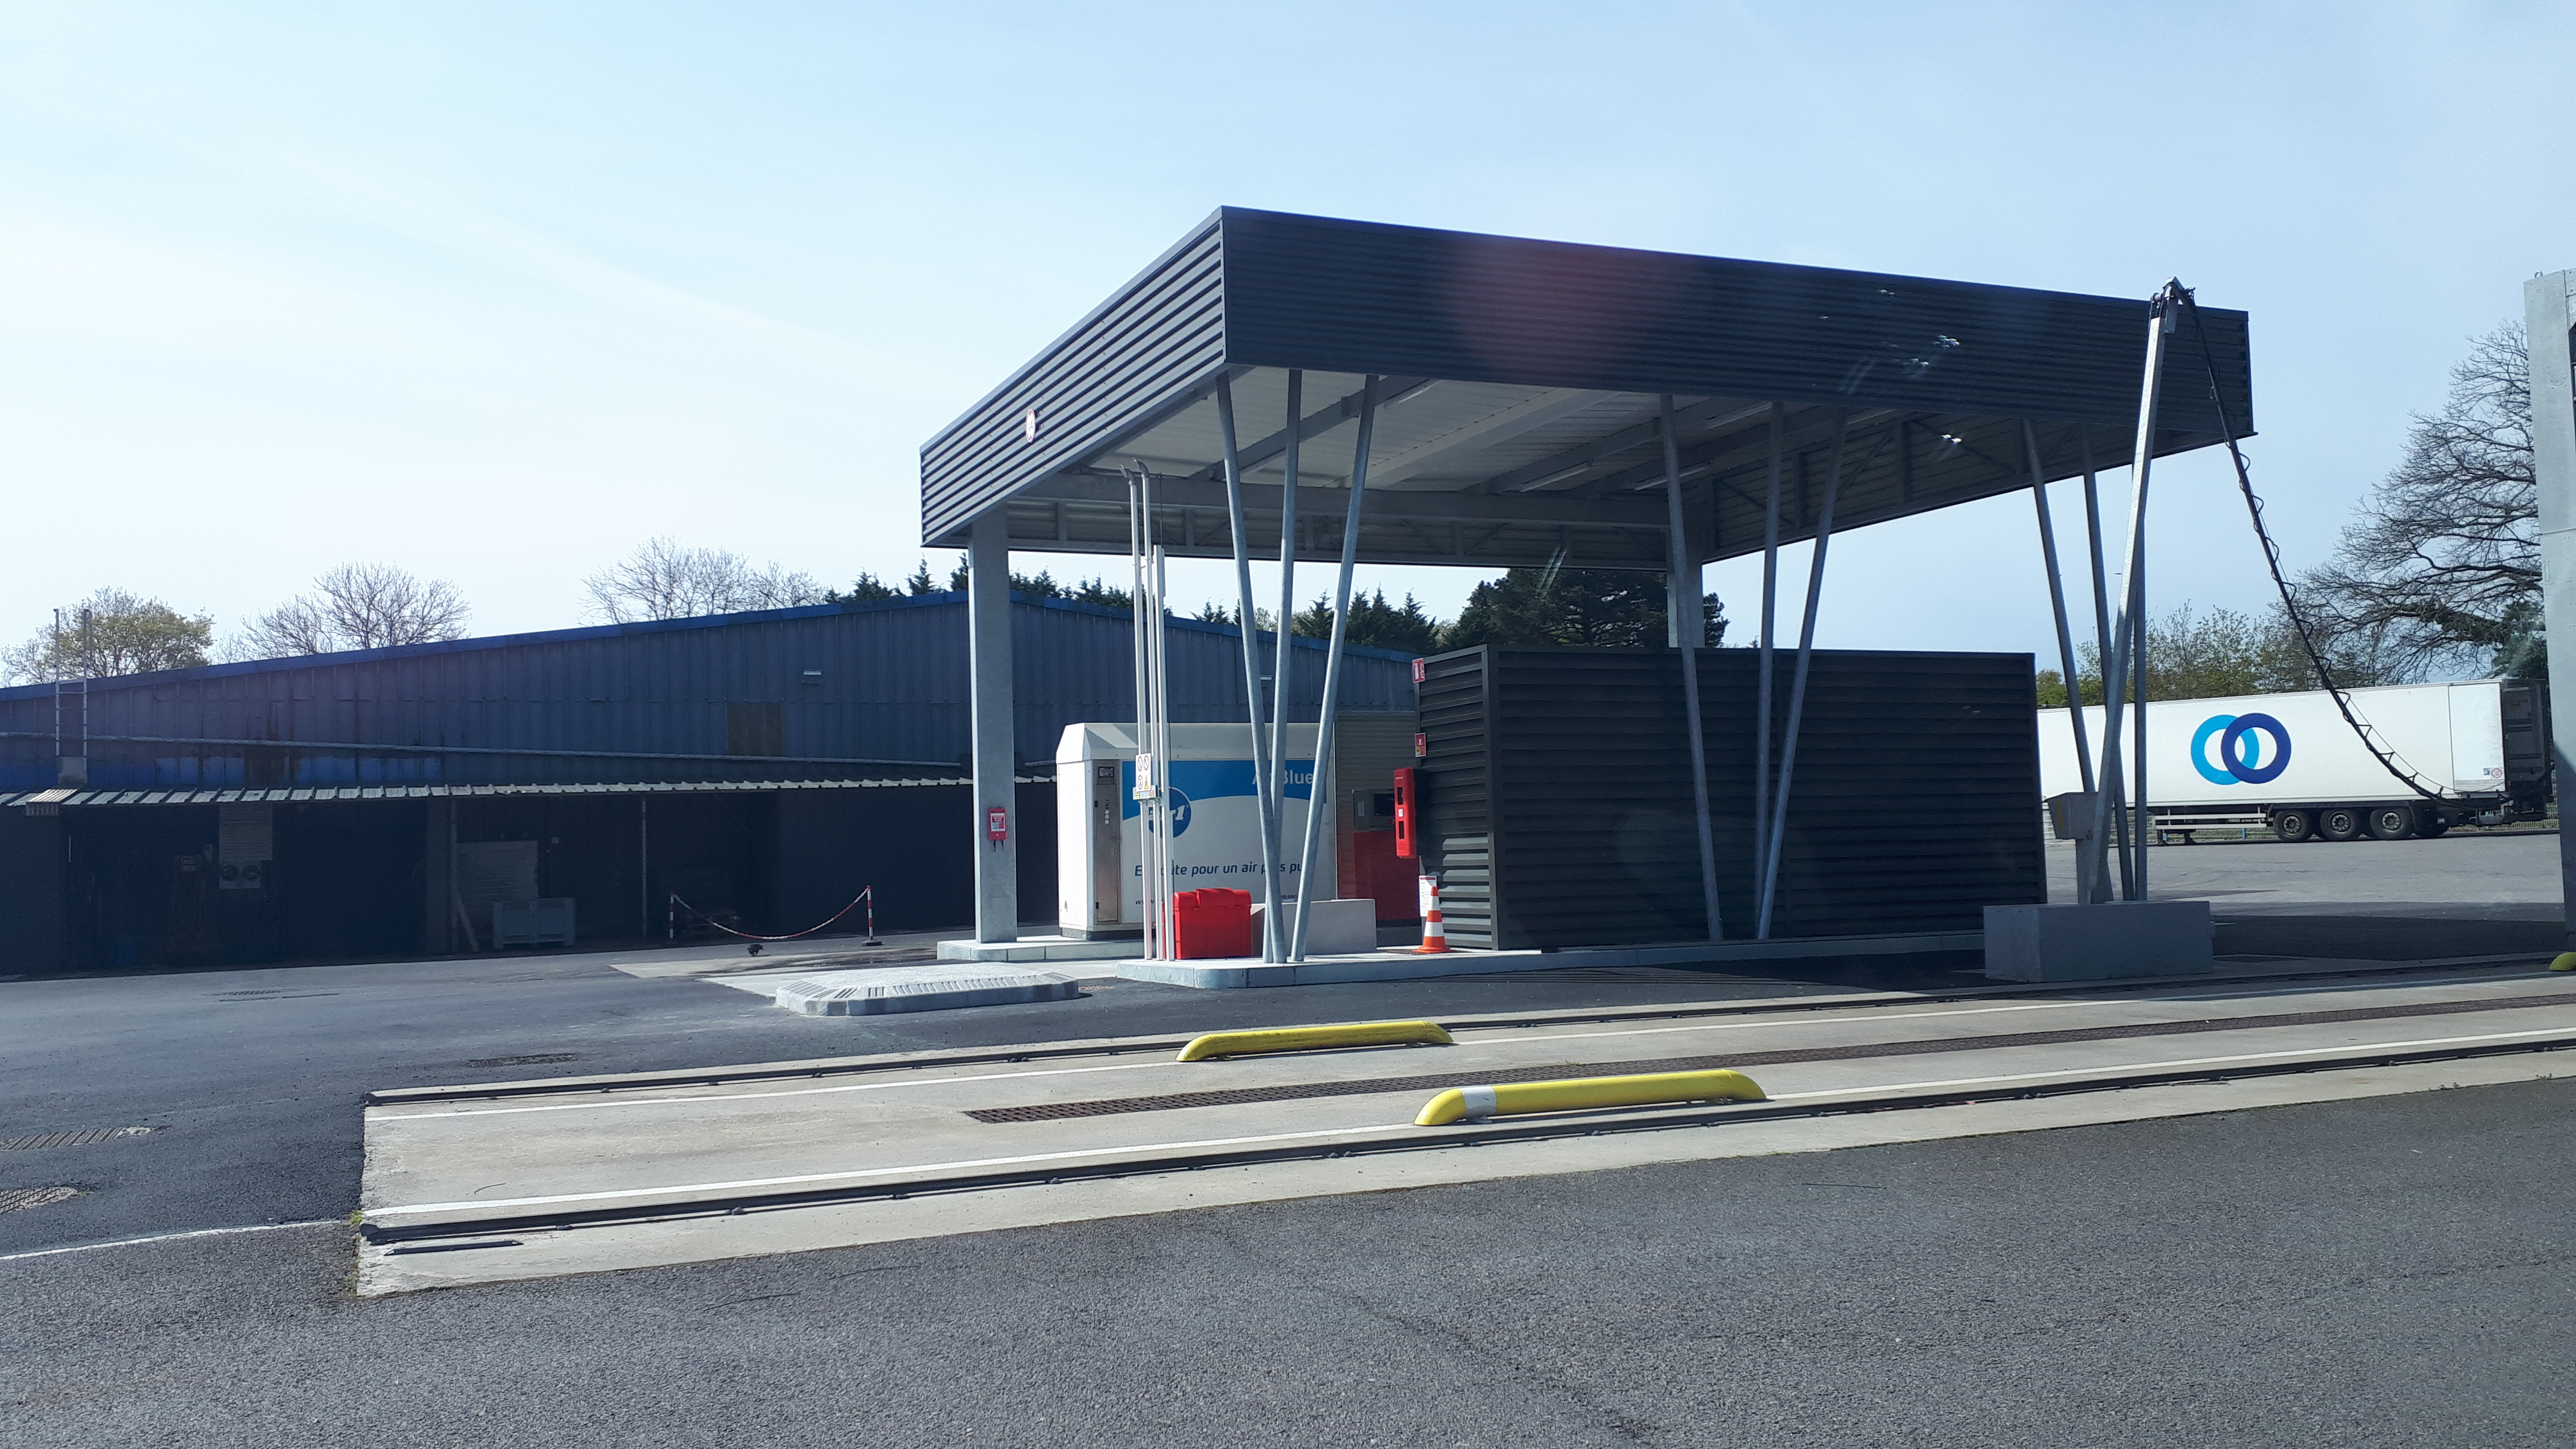 Station de carburant privative à Quimper